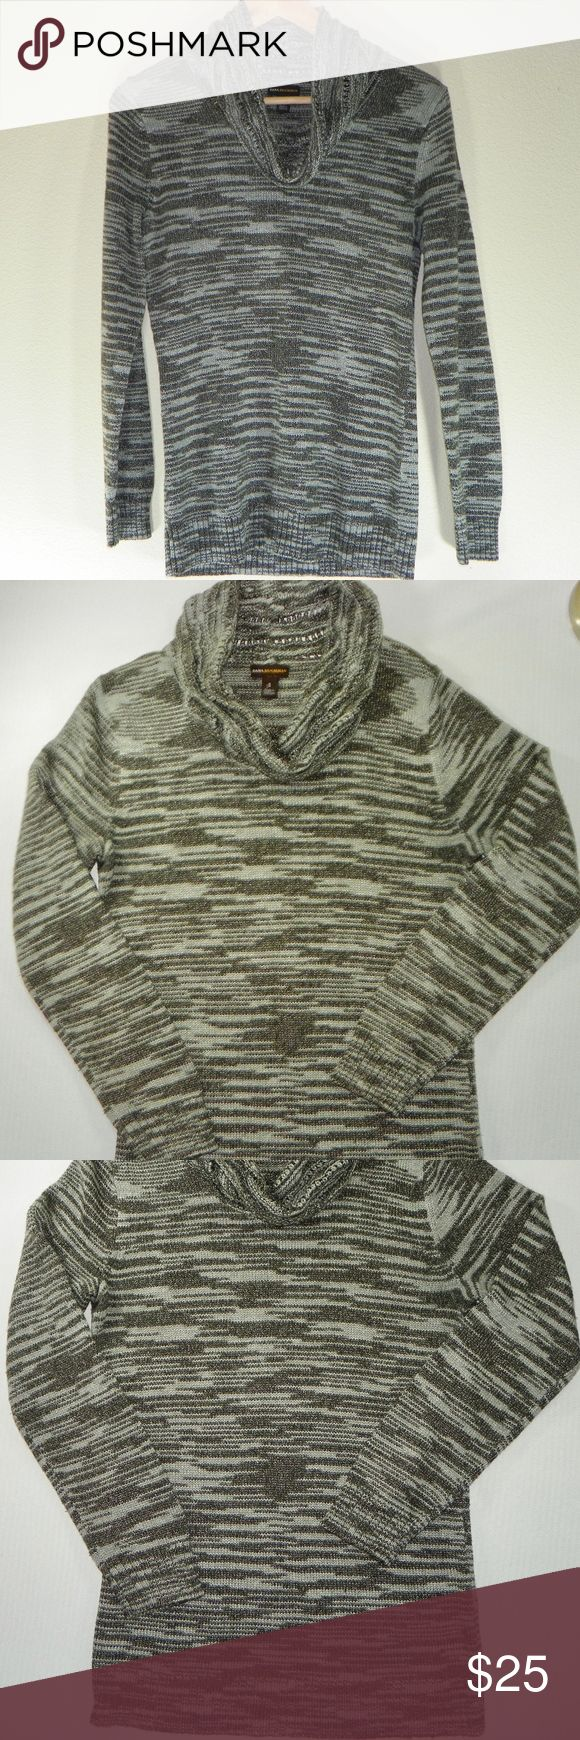 Dana Buchman Sz S  Women's Cowl Neck Sweater/Gray Dana Buchman Women's Sweater in Excellent Pre-Owned-Pre-Loved Condition.There are no flaws with this item, is free and clear of any noticeable stains, rips, pull of fabric and tears. Overall this sweater looks great and you will love it at a fraction of the price! If you notice a flaw that we did not mention, please contact us first before leaving negative feedbacks. We are only human and may make a mistake once in a while.  Lighting and…